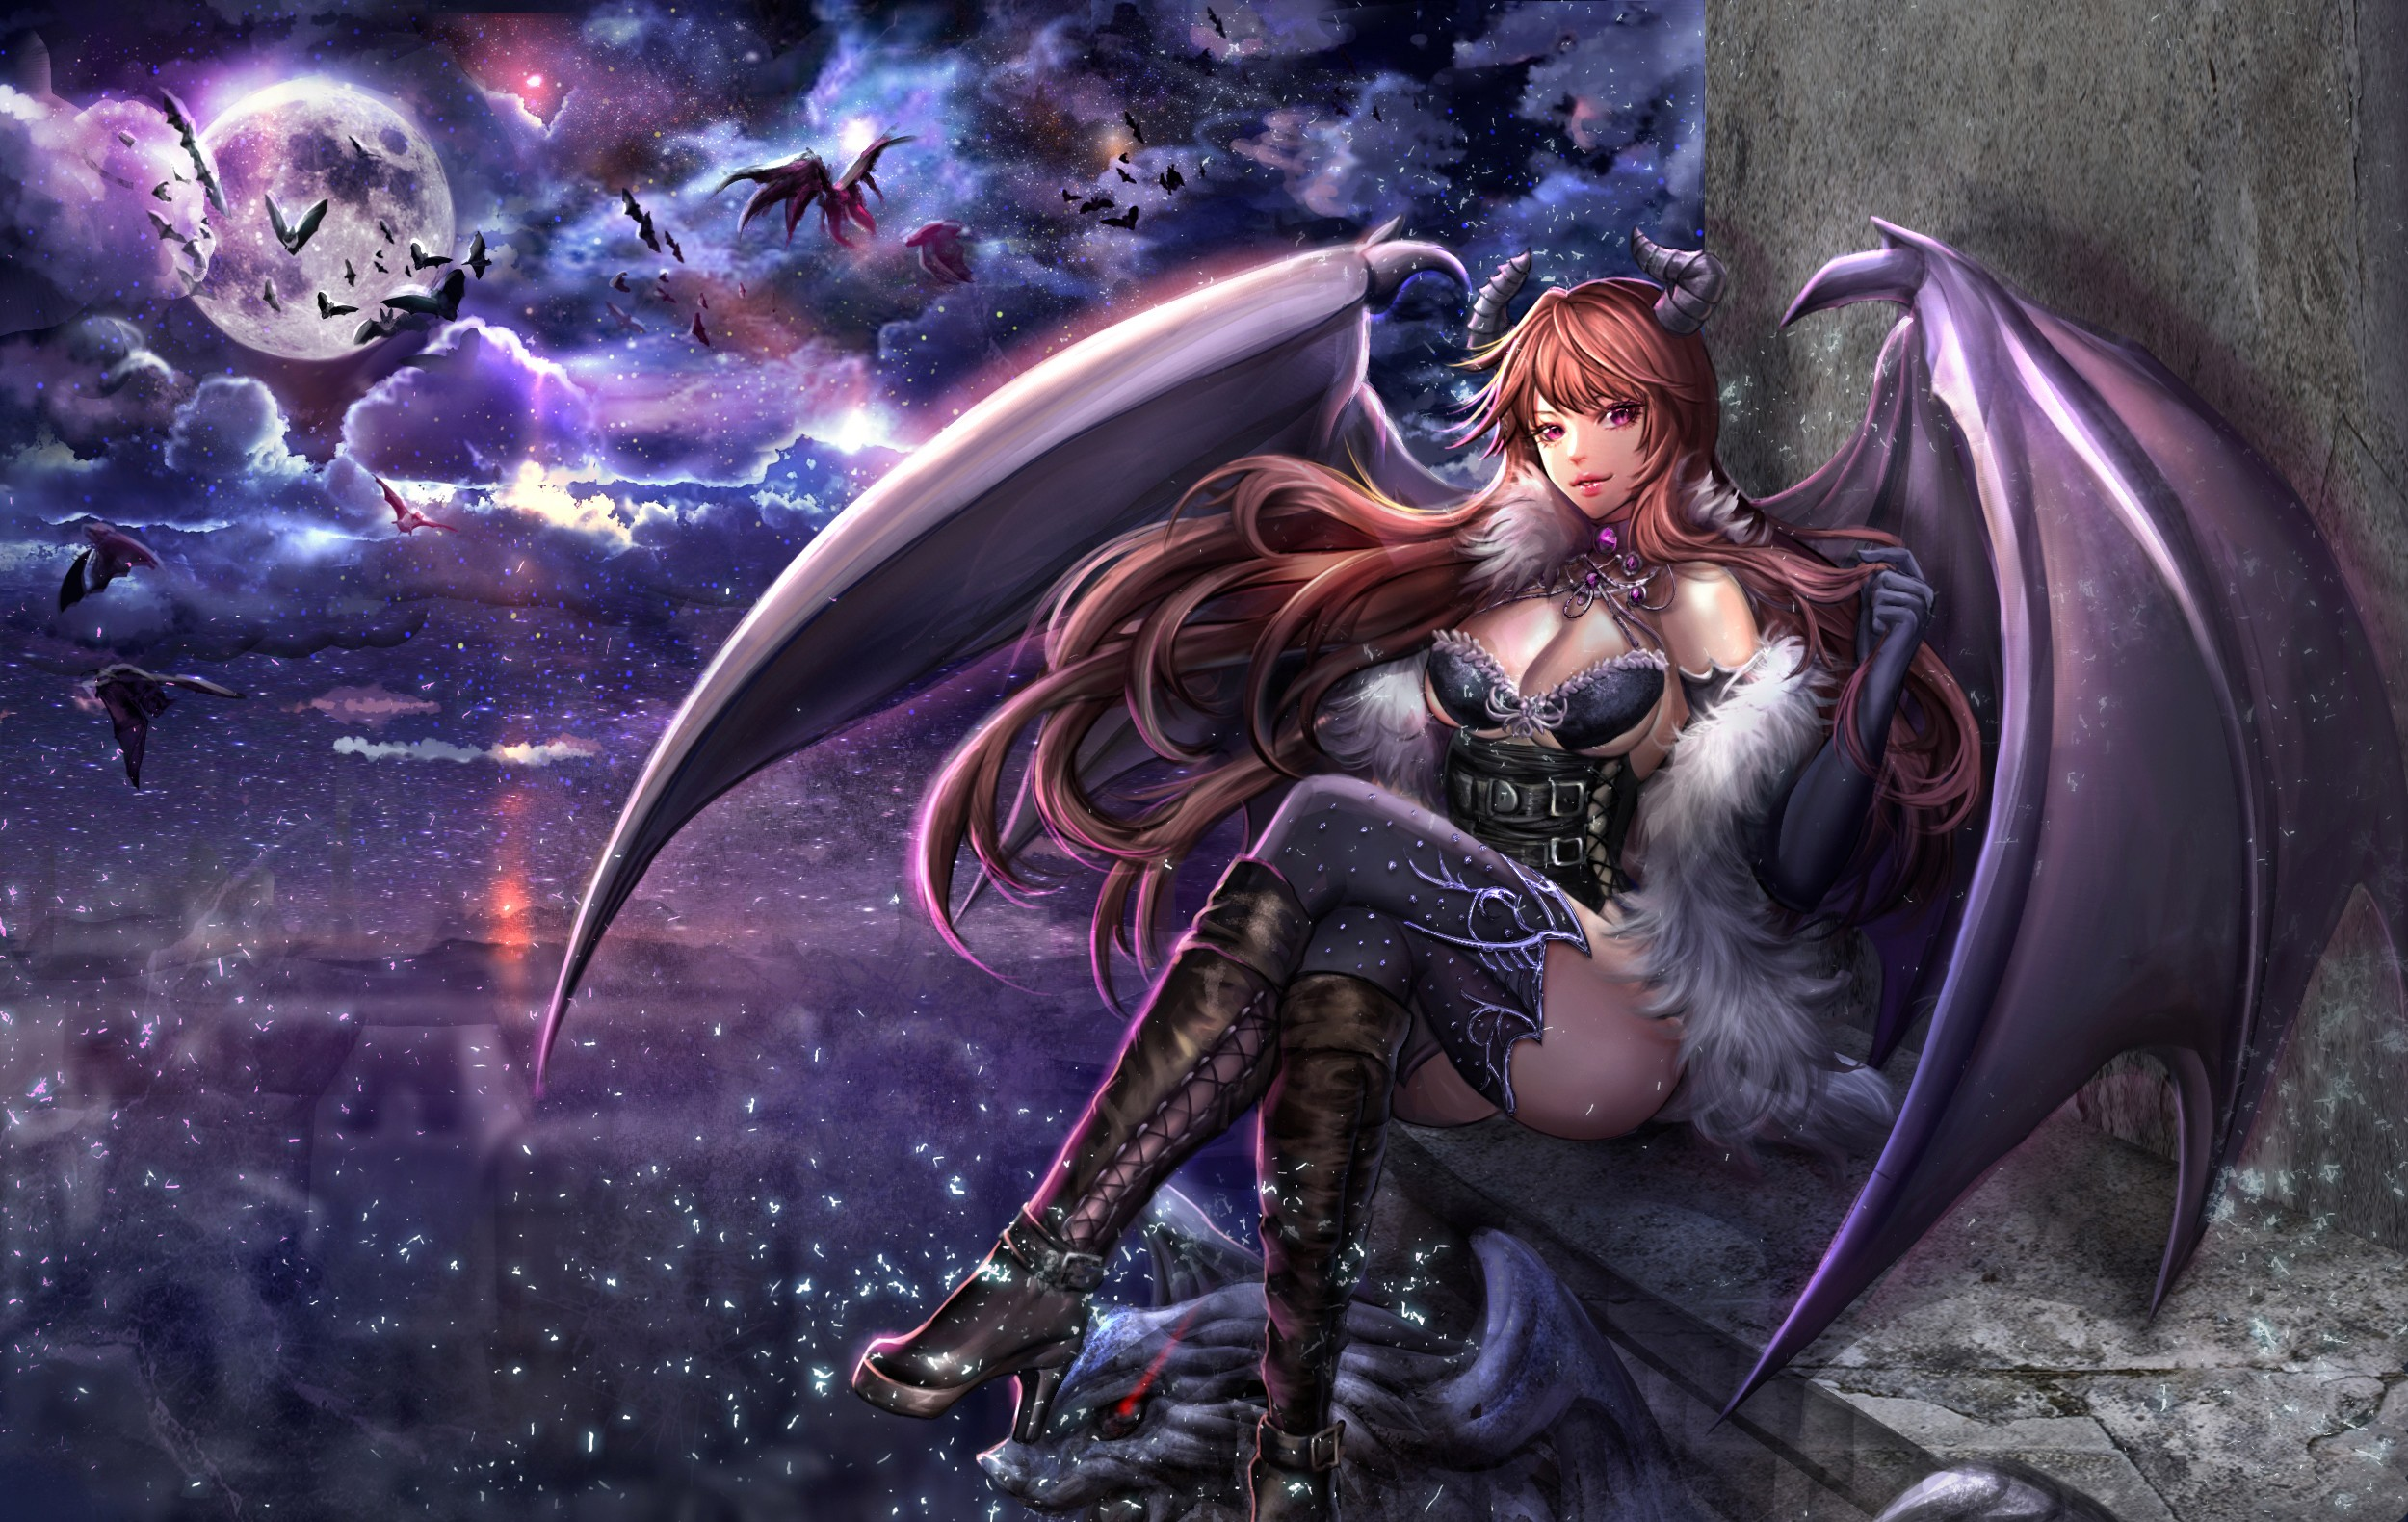 Succubus wallpaper download free high resolution wallpapers for 1920x1080 voltagebd Image collections